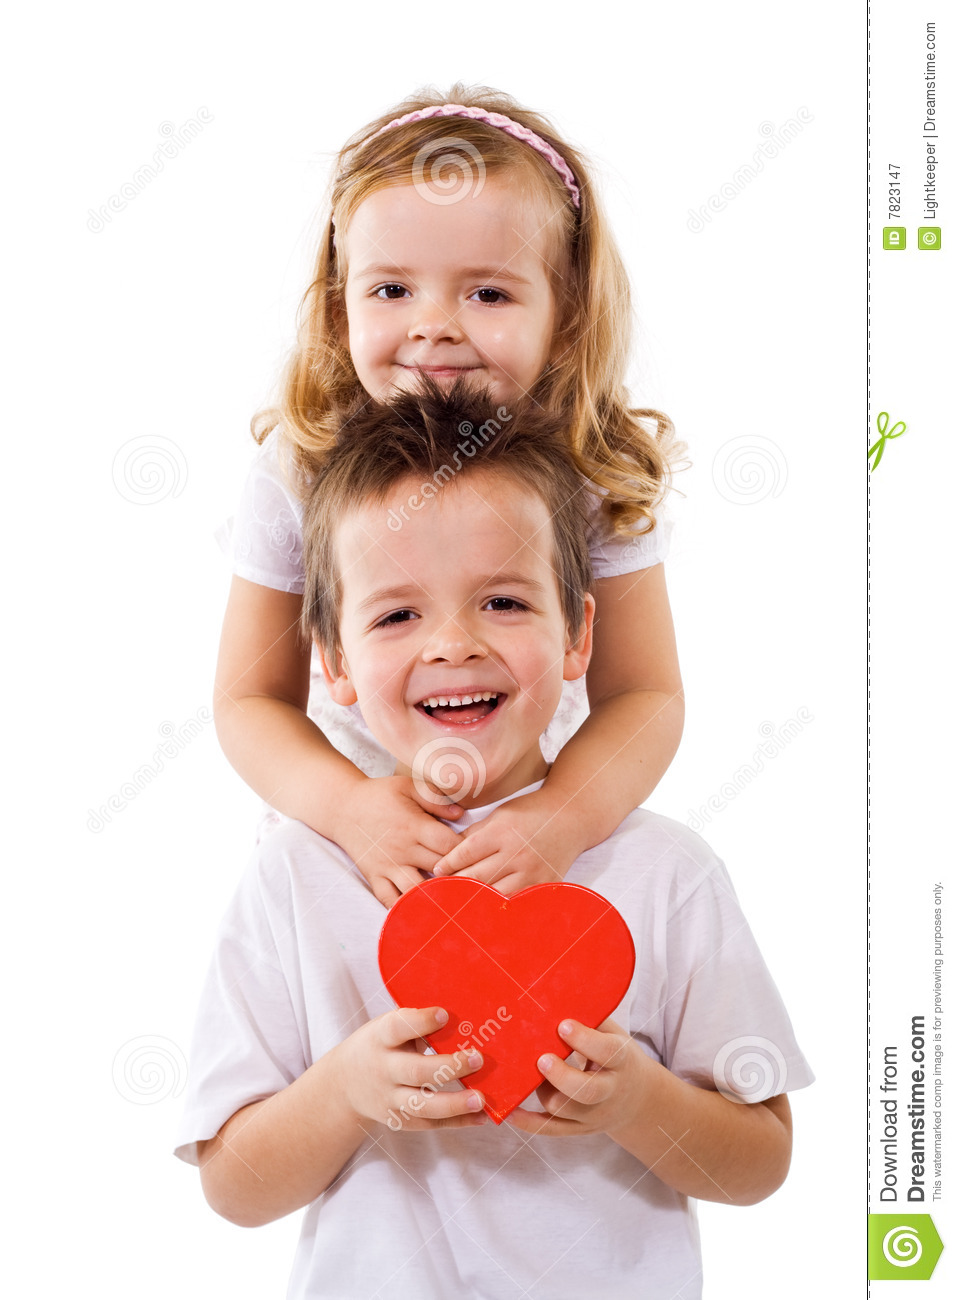 Hugging kids clipart happy kids hugging and holding